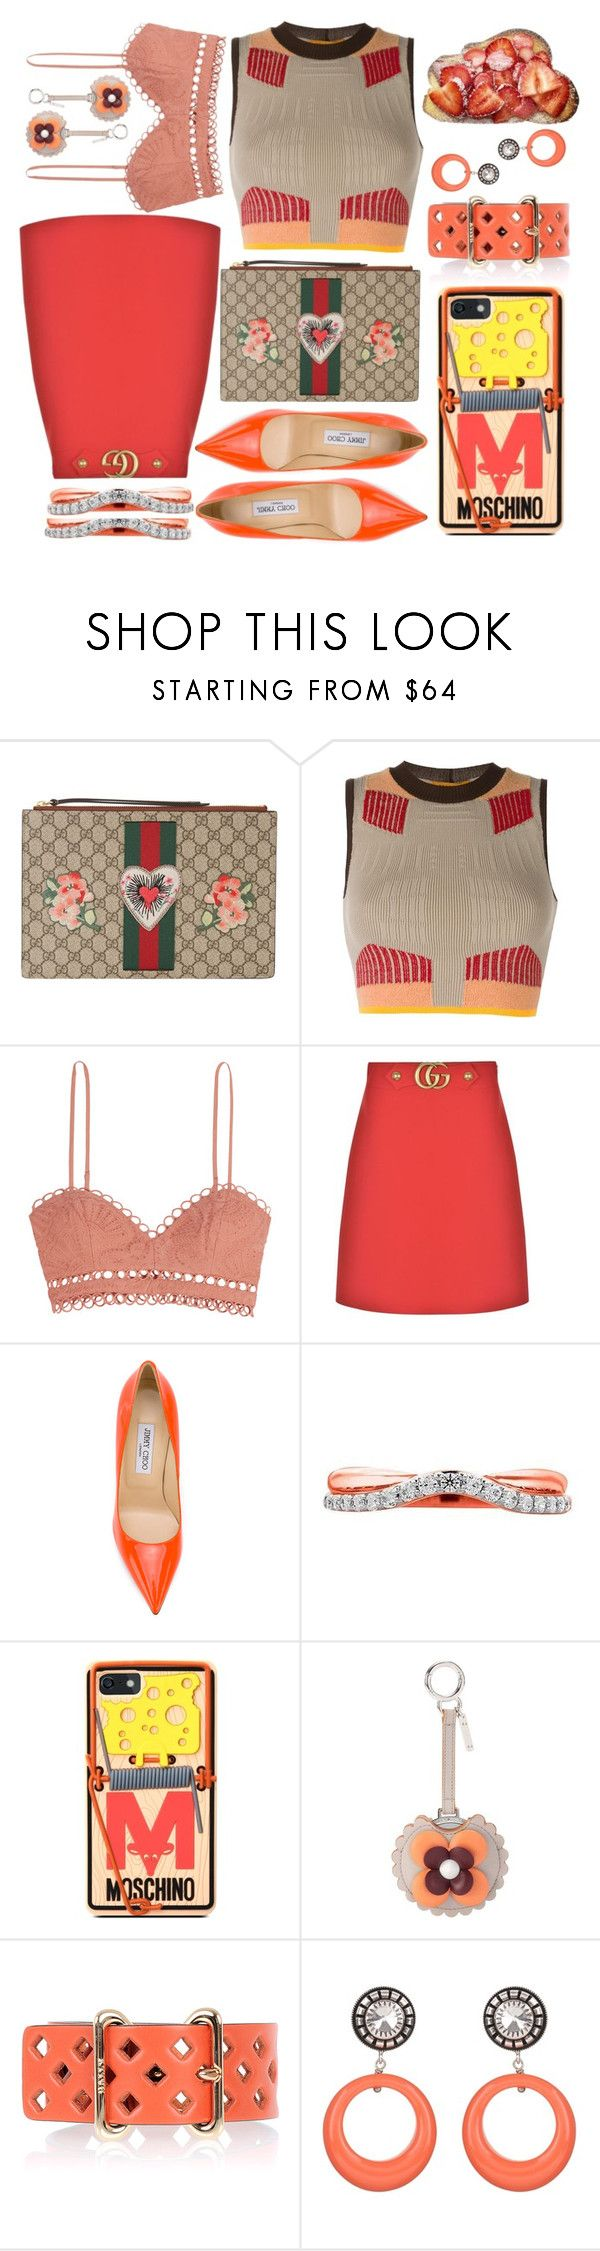 """""""Wednesday"""" by sunnydays4everkh ❤ liked on Polyvore featuring Gucci, Yeezy by Kanye West, Zimmermann, Jimmy Choo, Moschino, Fendi, Bally and Julie Sion"""